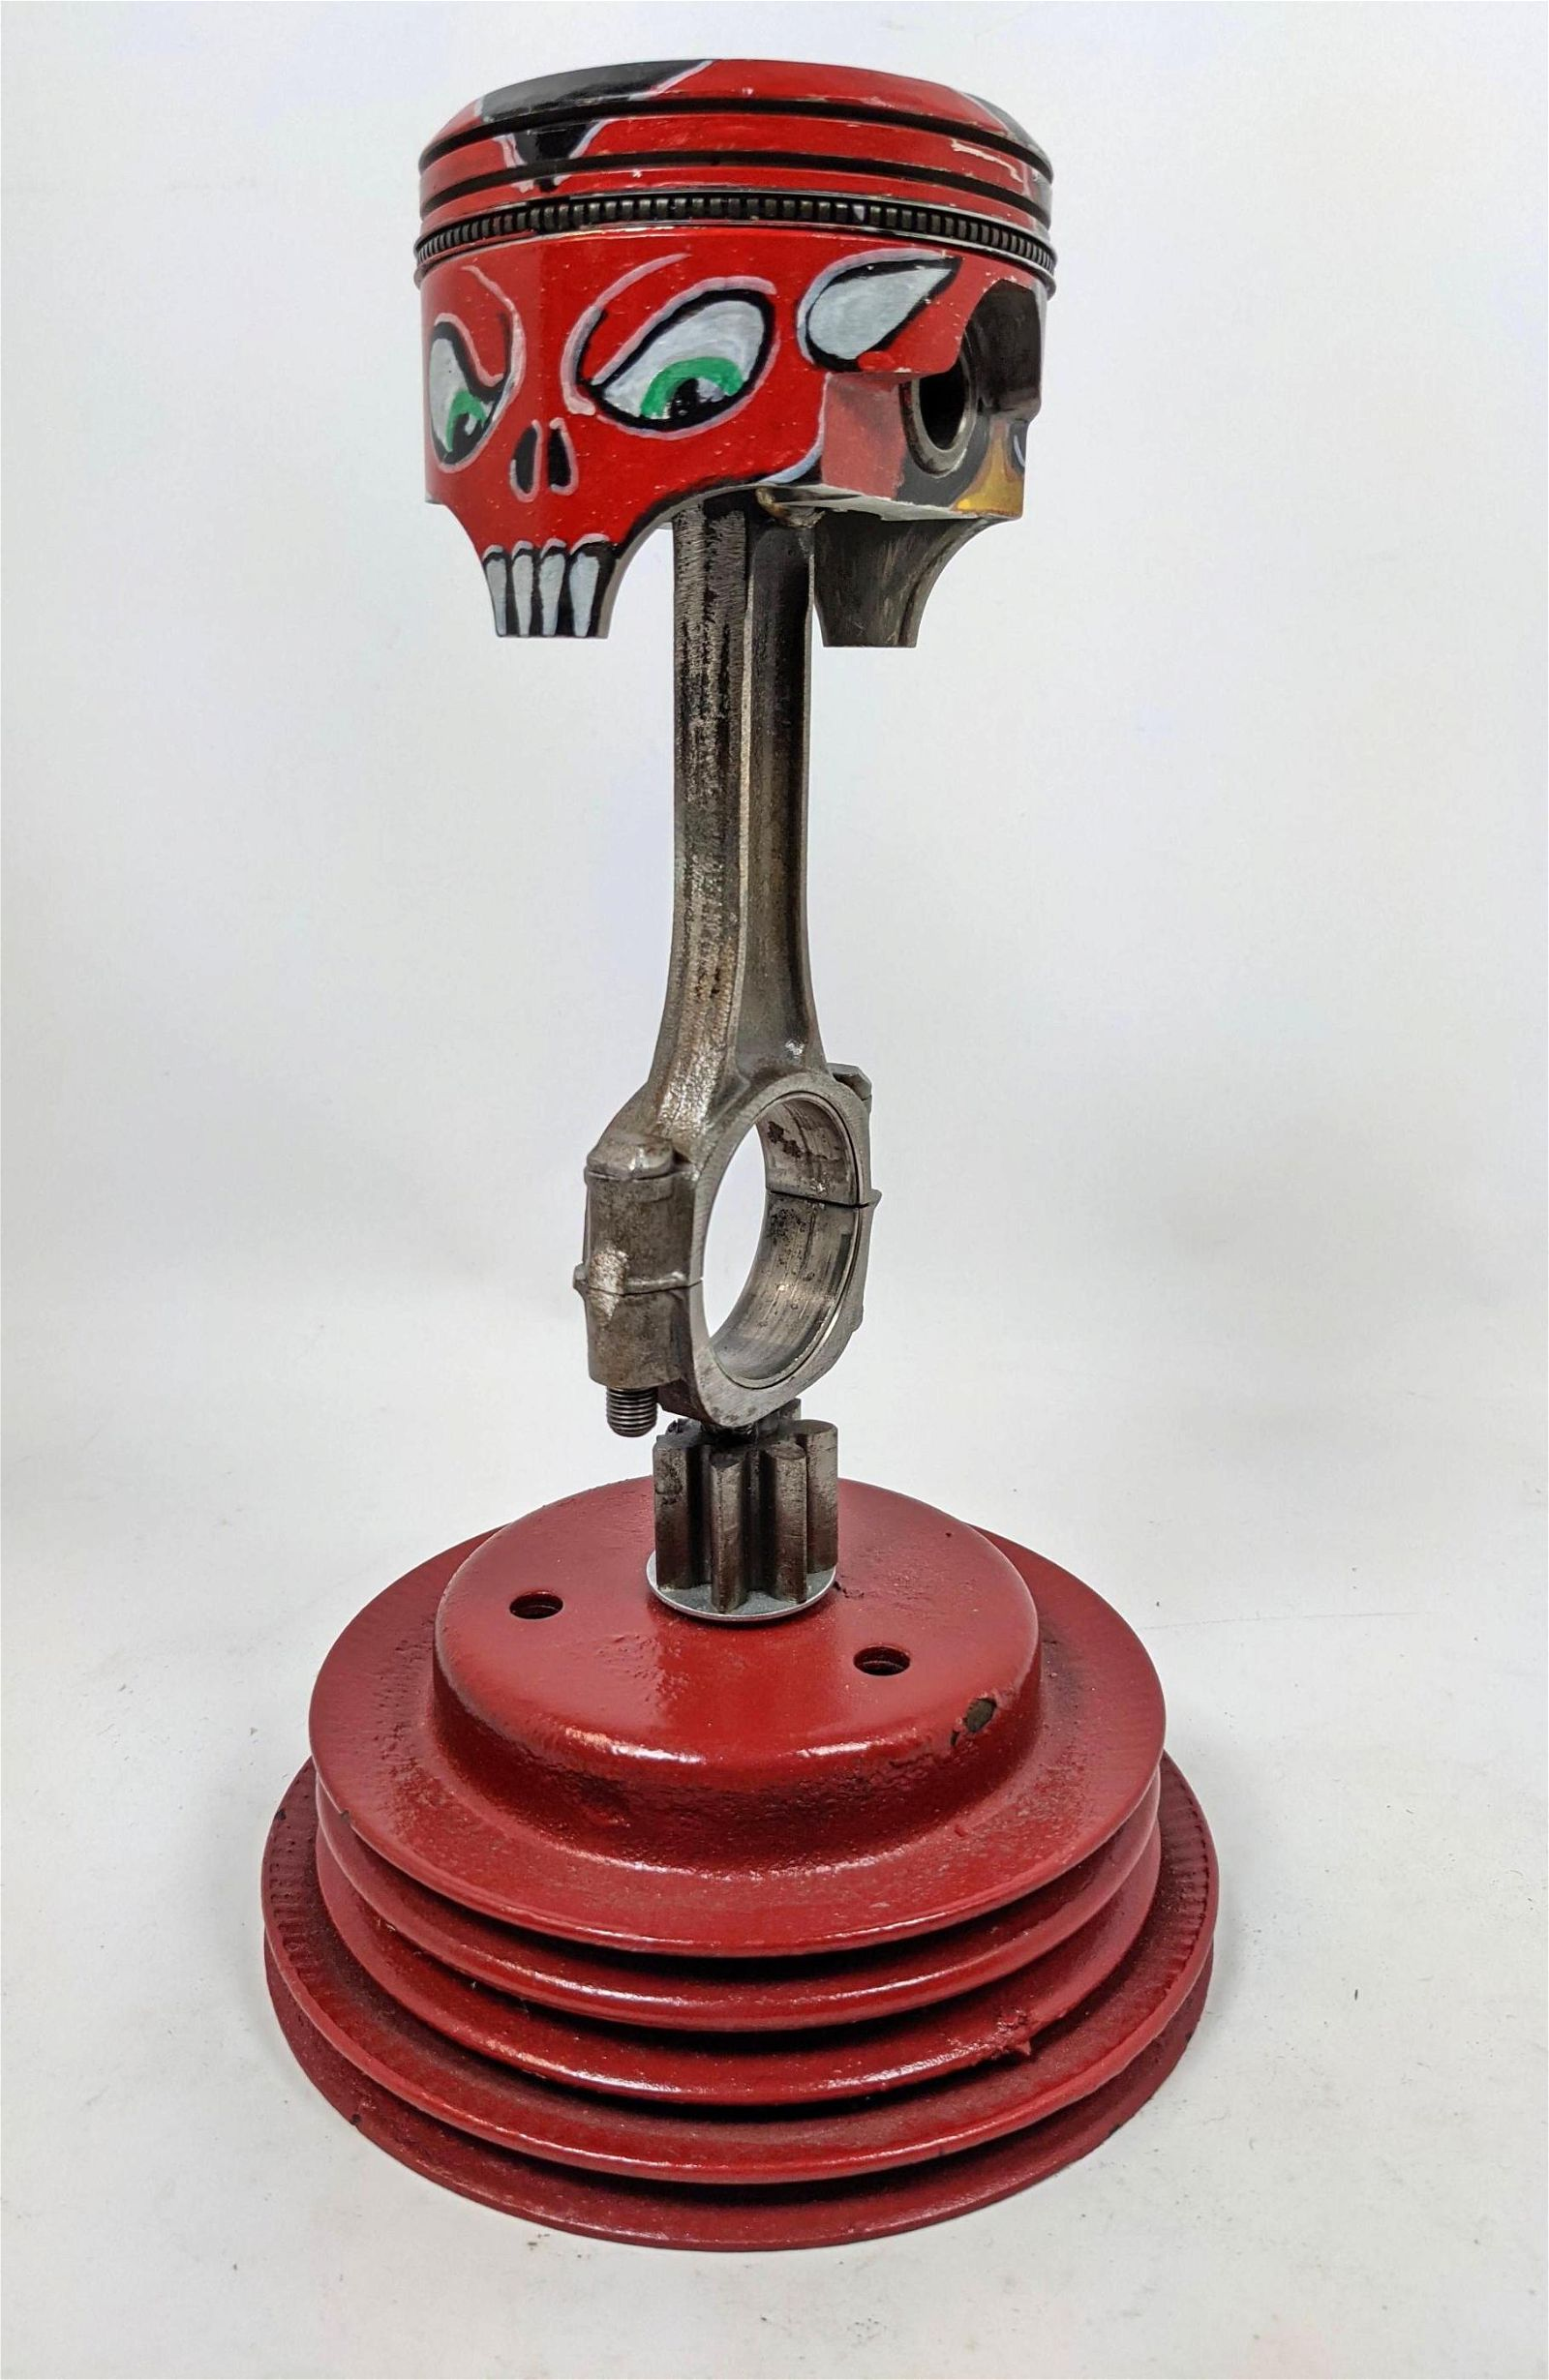 Industrial Painted Piston Table Sculpture.